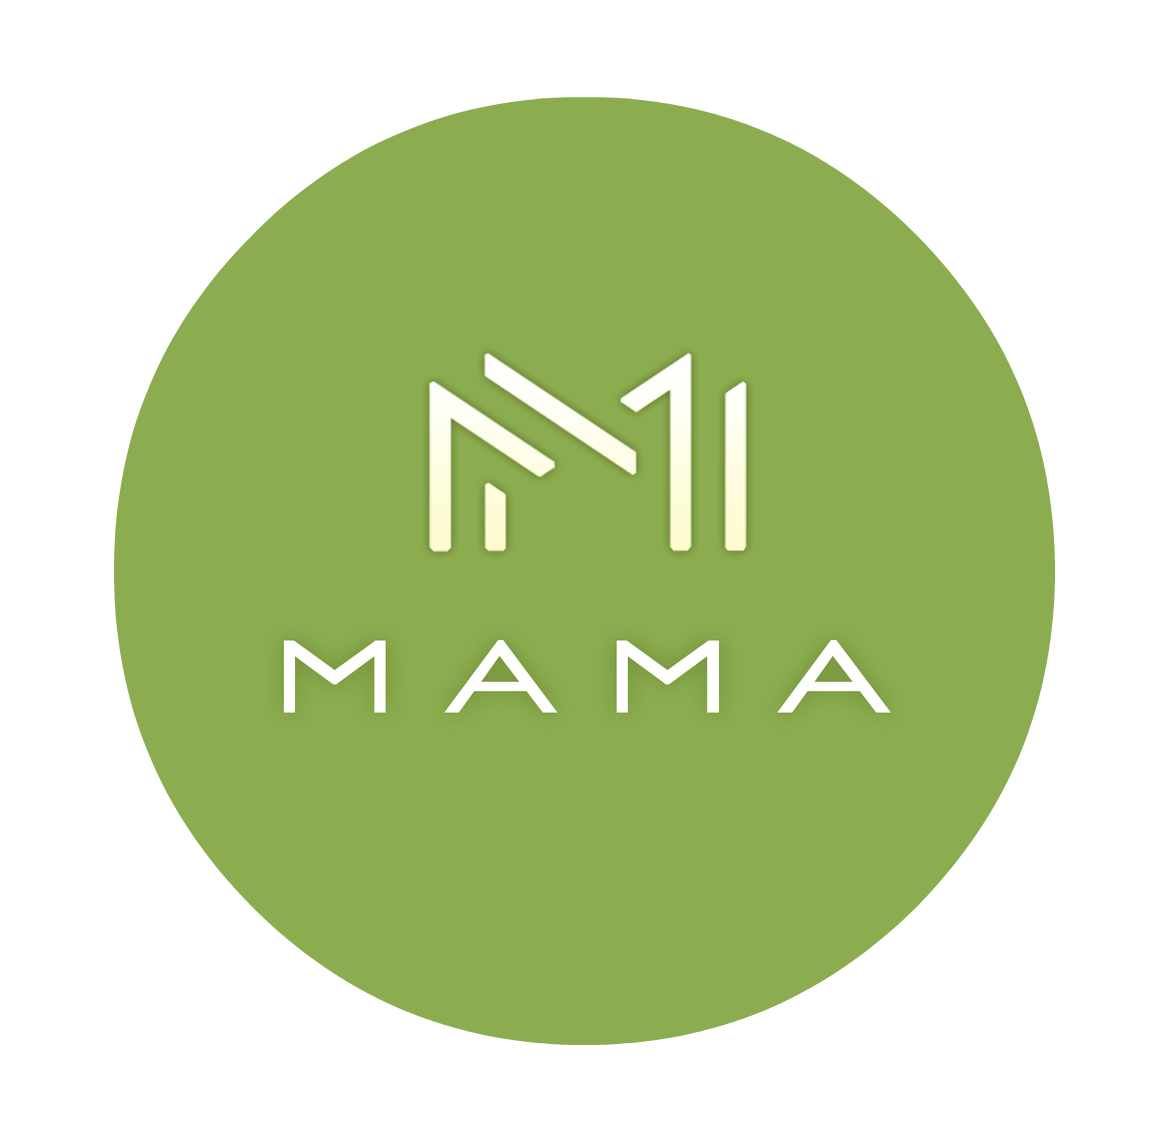 MAMA: Movement, Arts, Mindfulness & Animals